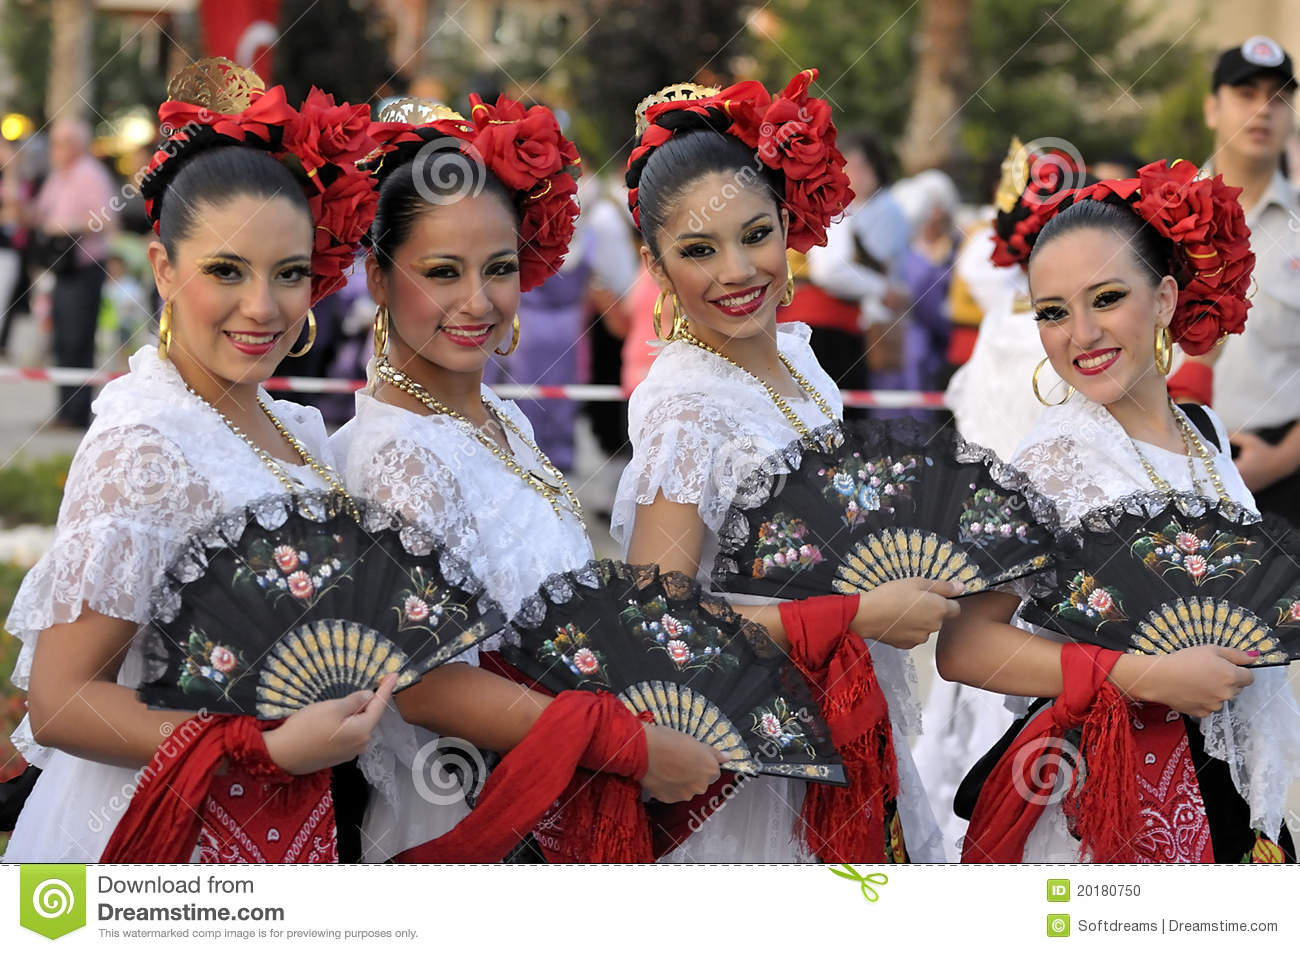 Mexican Folkloric Everything Goes Dance Studio